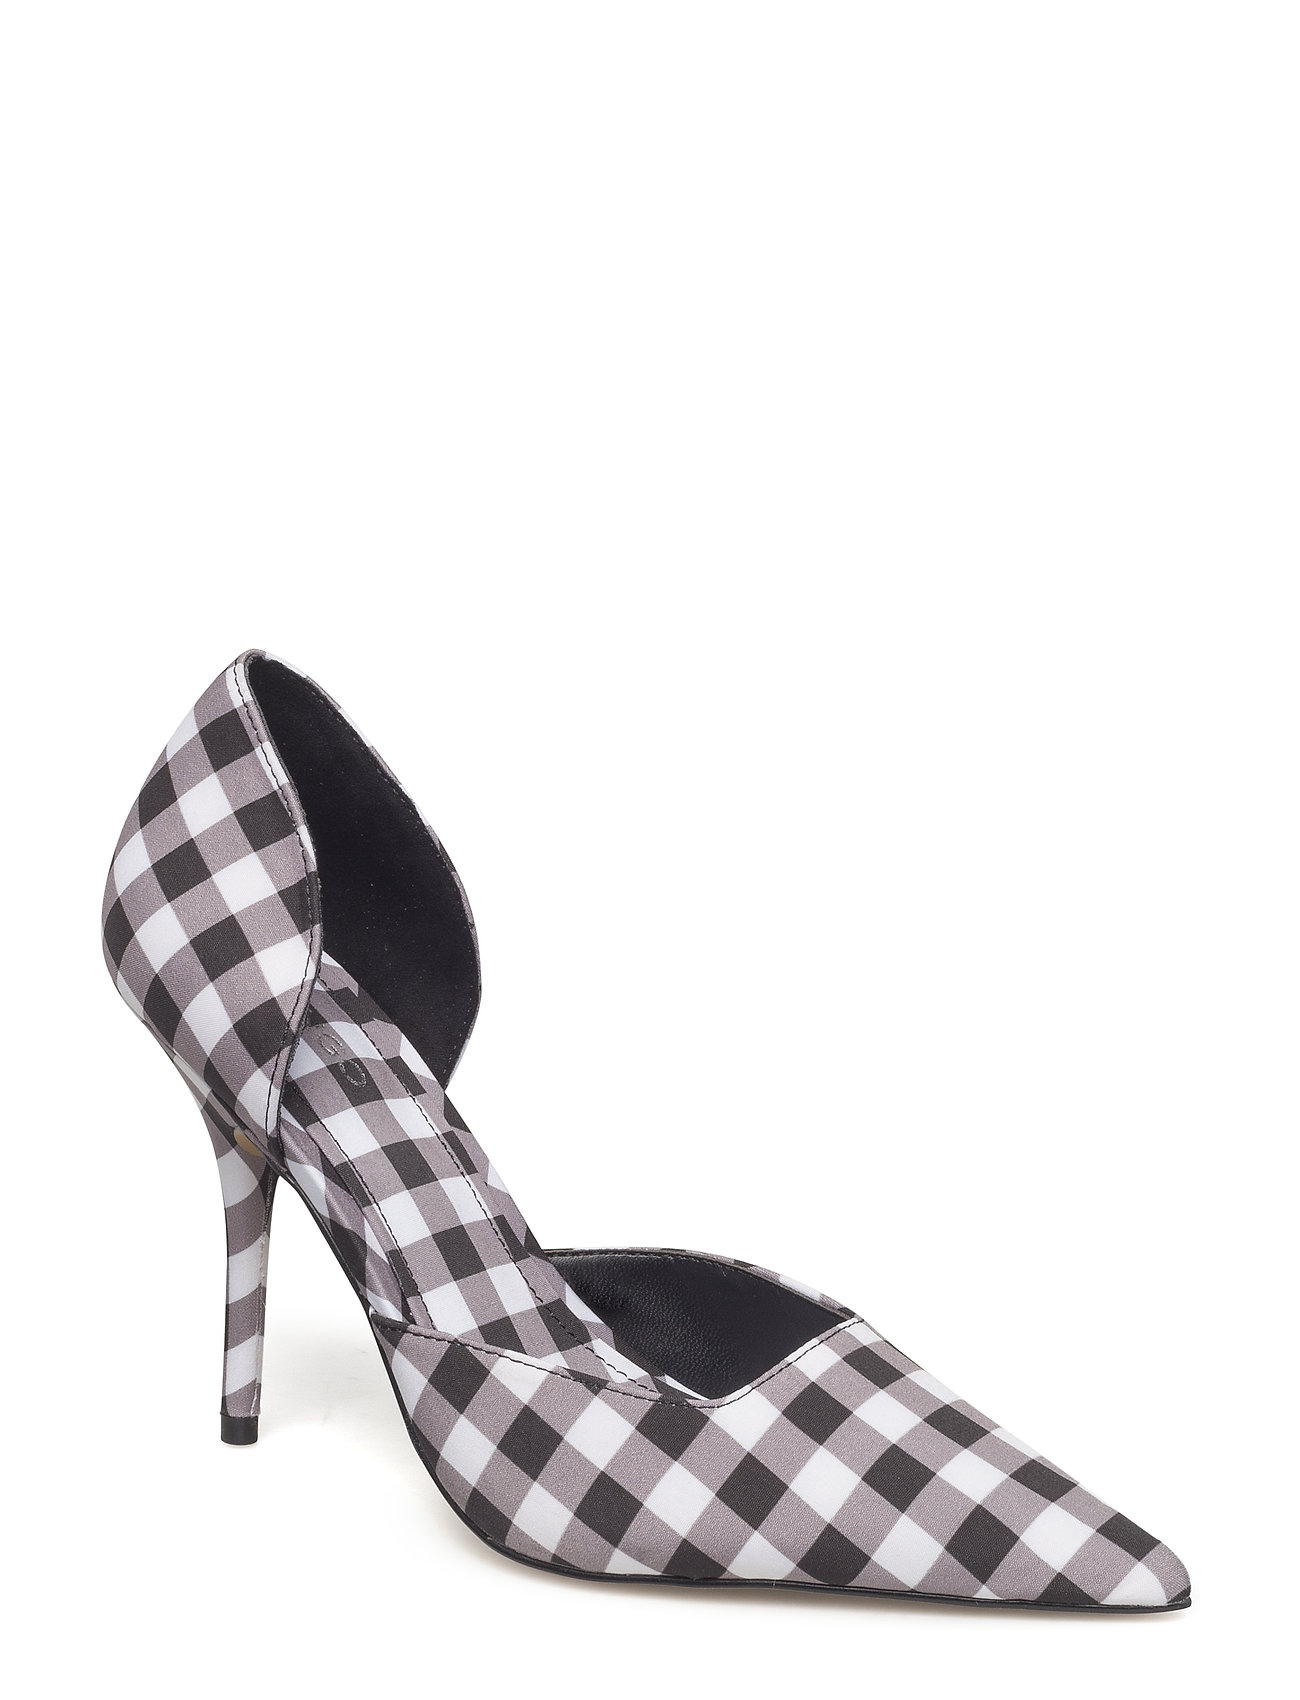 Gingham Check Shoes